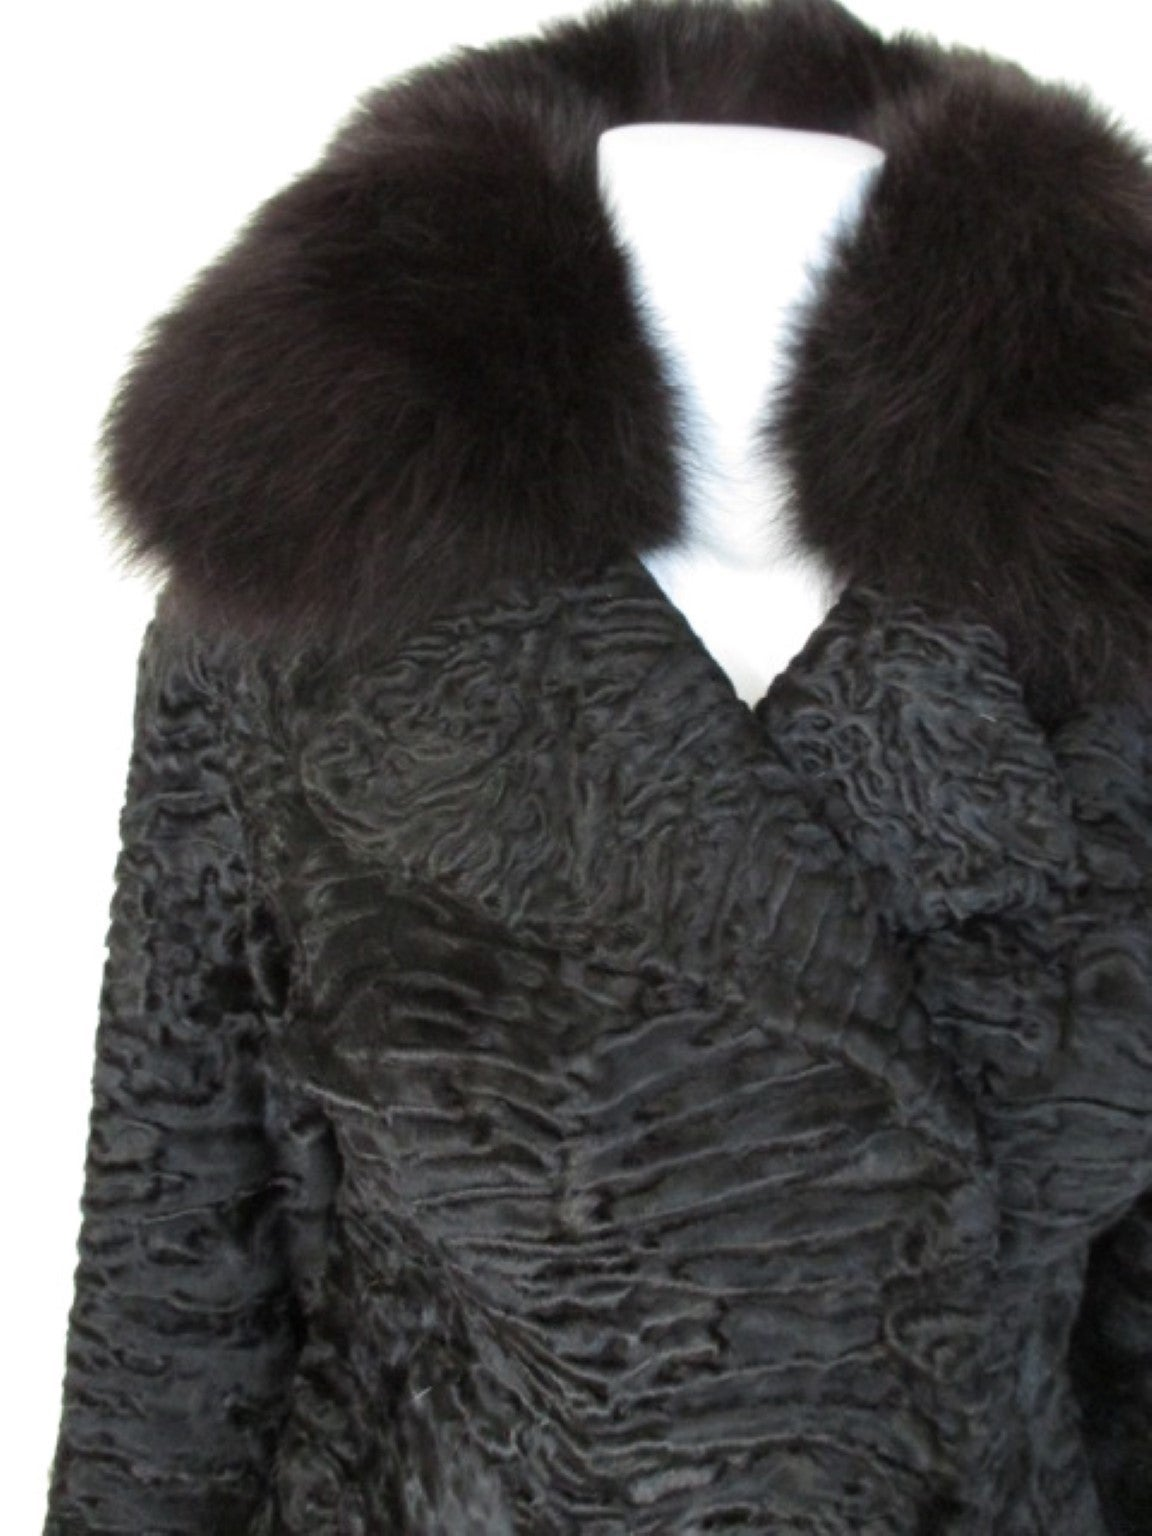 Black persian Lamb/Astrakhan fur jacket with fox details In Excellent Condition For Sale In Amsterdam, NL